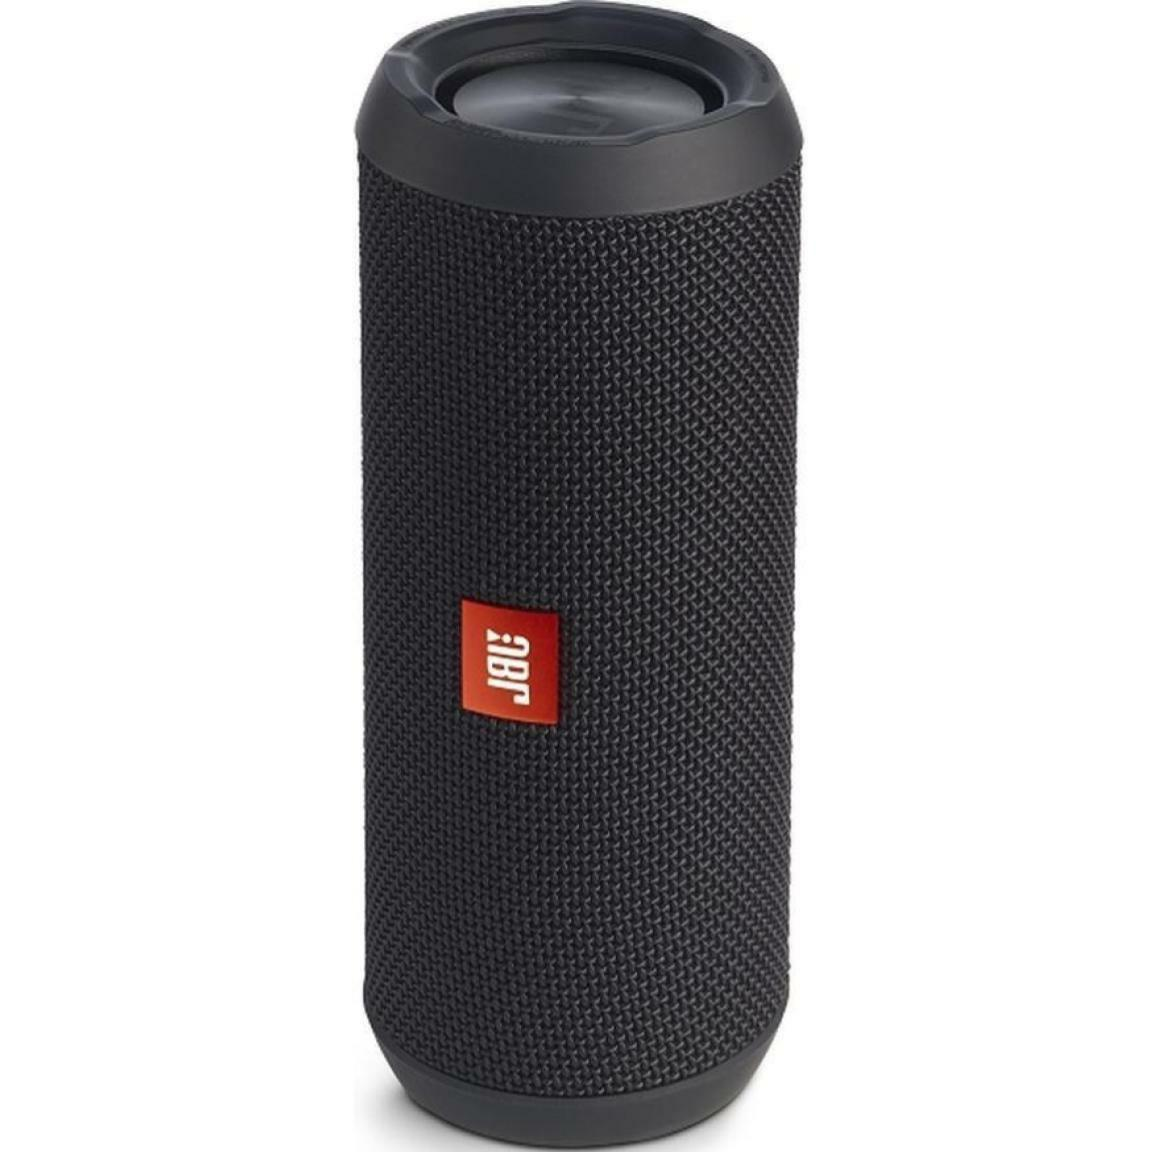 JBL Flip 3 - Black - Portable, Waterproof, Wireless, Bluetoo